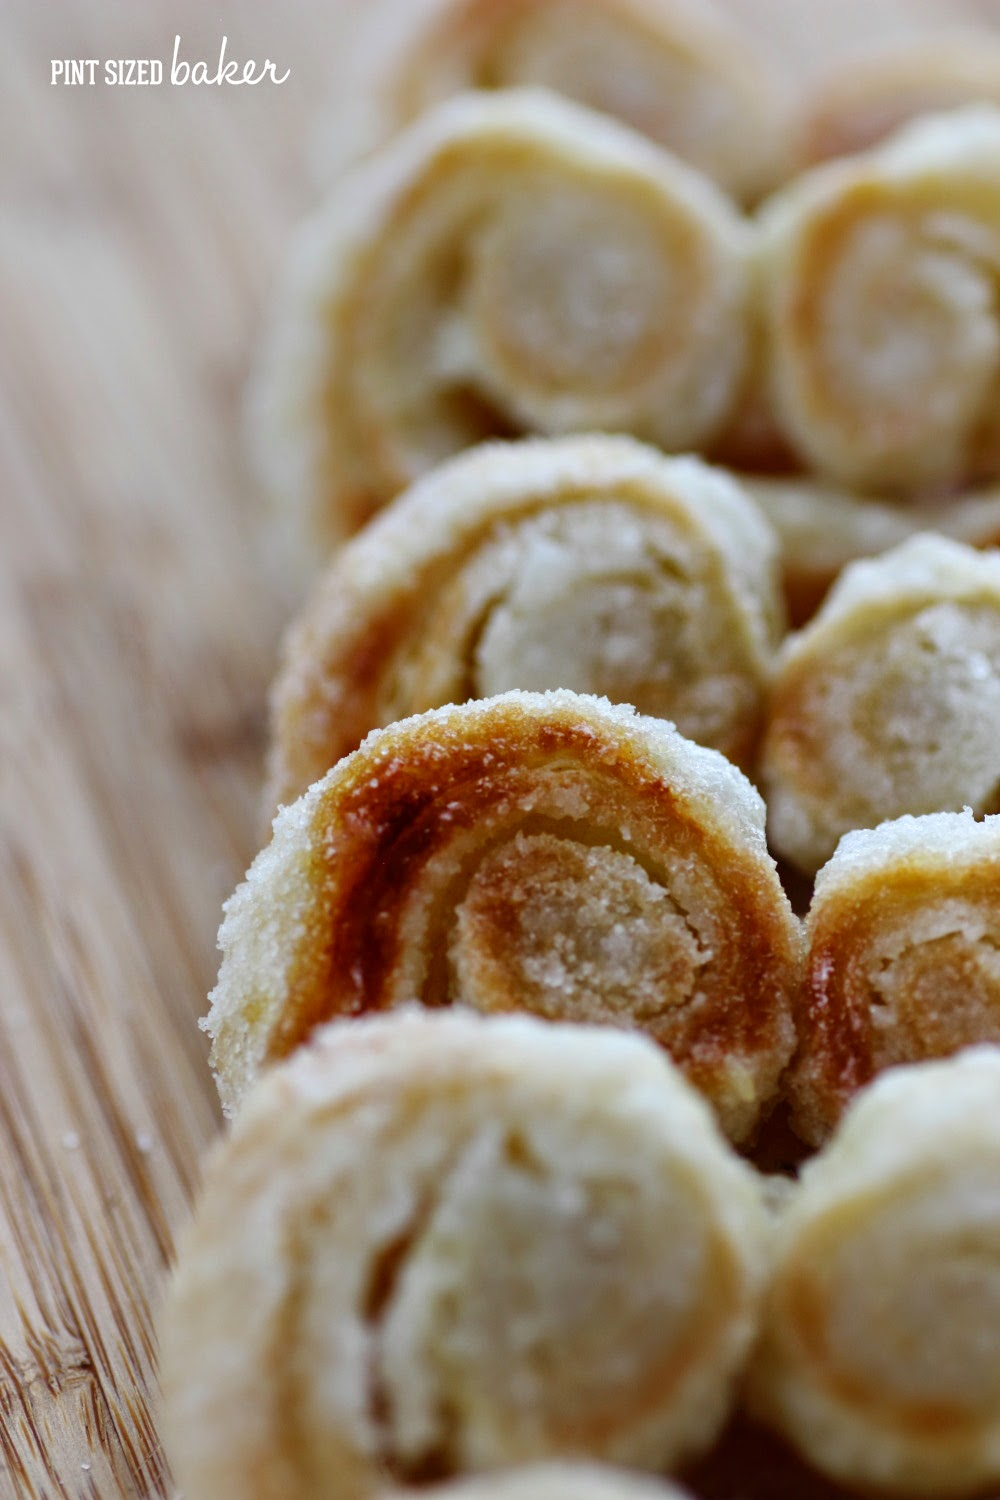 I love the sugar and swirls on these Palmier Cookies. It's so pretty!